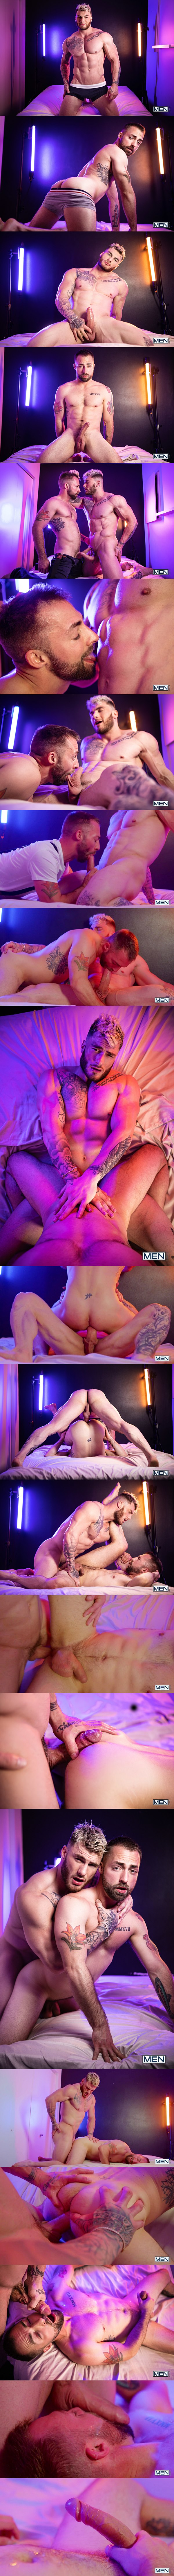 Handsome Canadian beefcake William Seed barebacks bearded stud Jeremy London hard and deep before he cums on Jeremy's face in Hooking Up With William Seed at Men 01